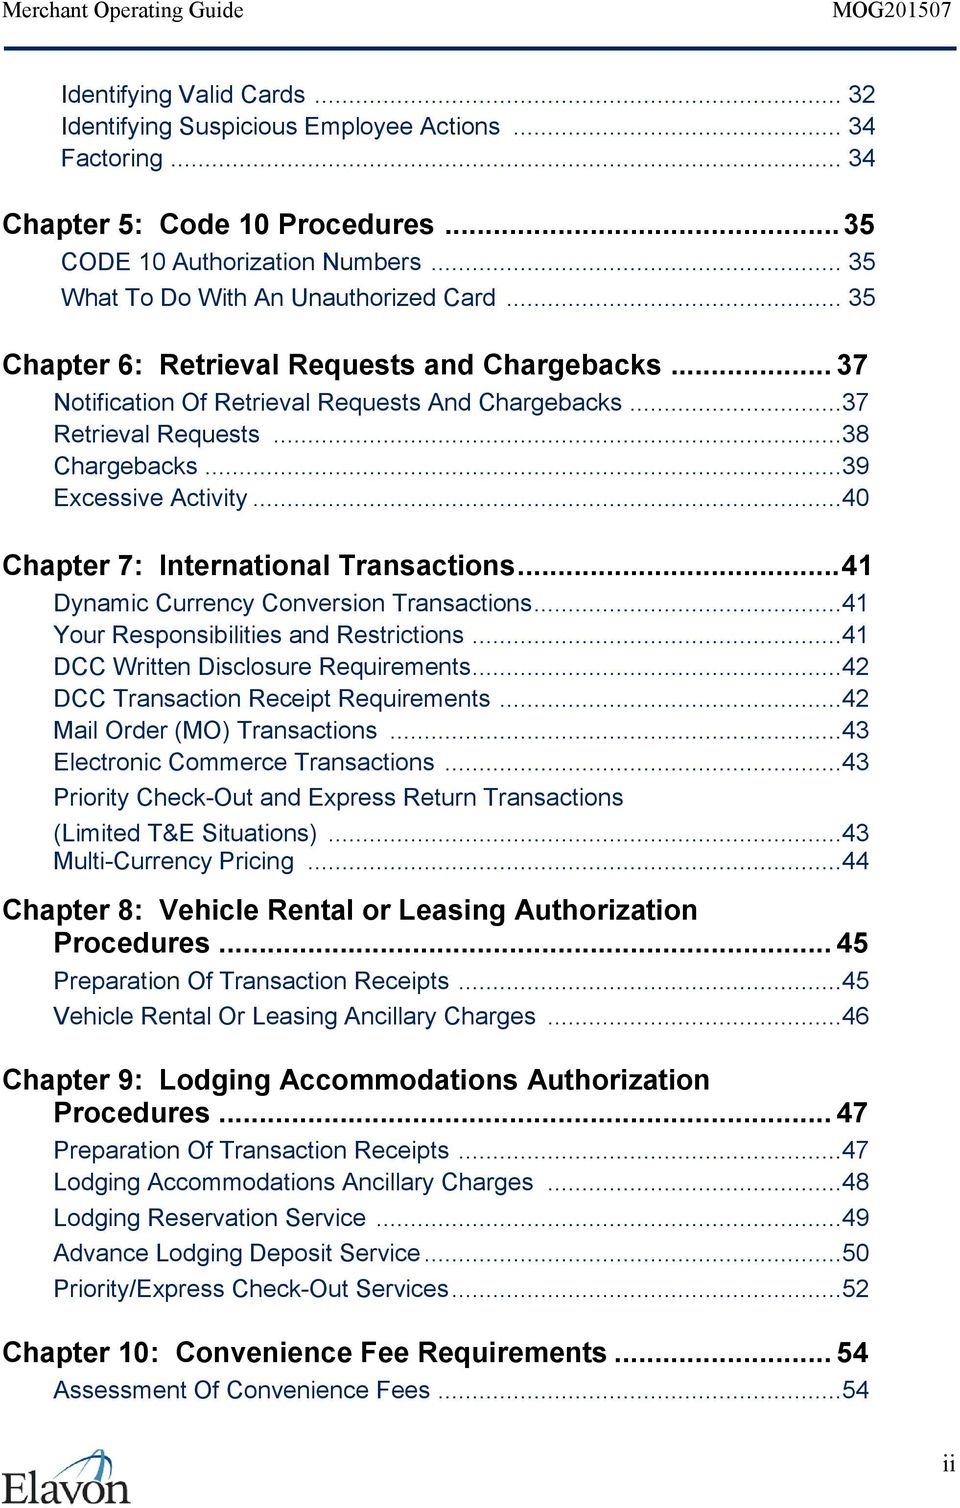 ..40 Chapter 7: International Transactions...41 Dynamic Currency Conversion Transactions...41 Your Responsibilities and Restrictions...41 DCC Written Disclosure Requirements.